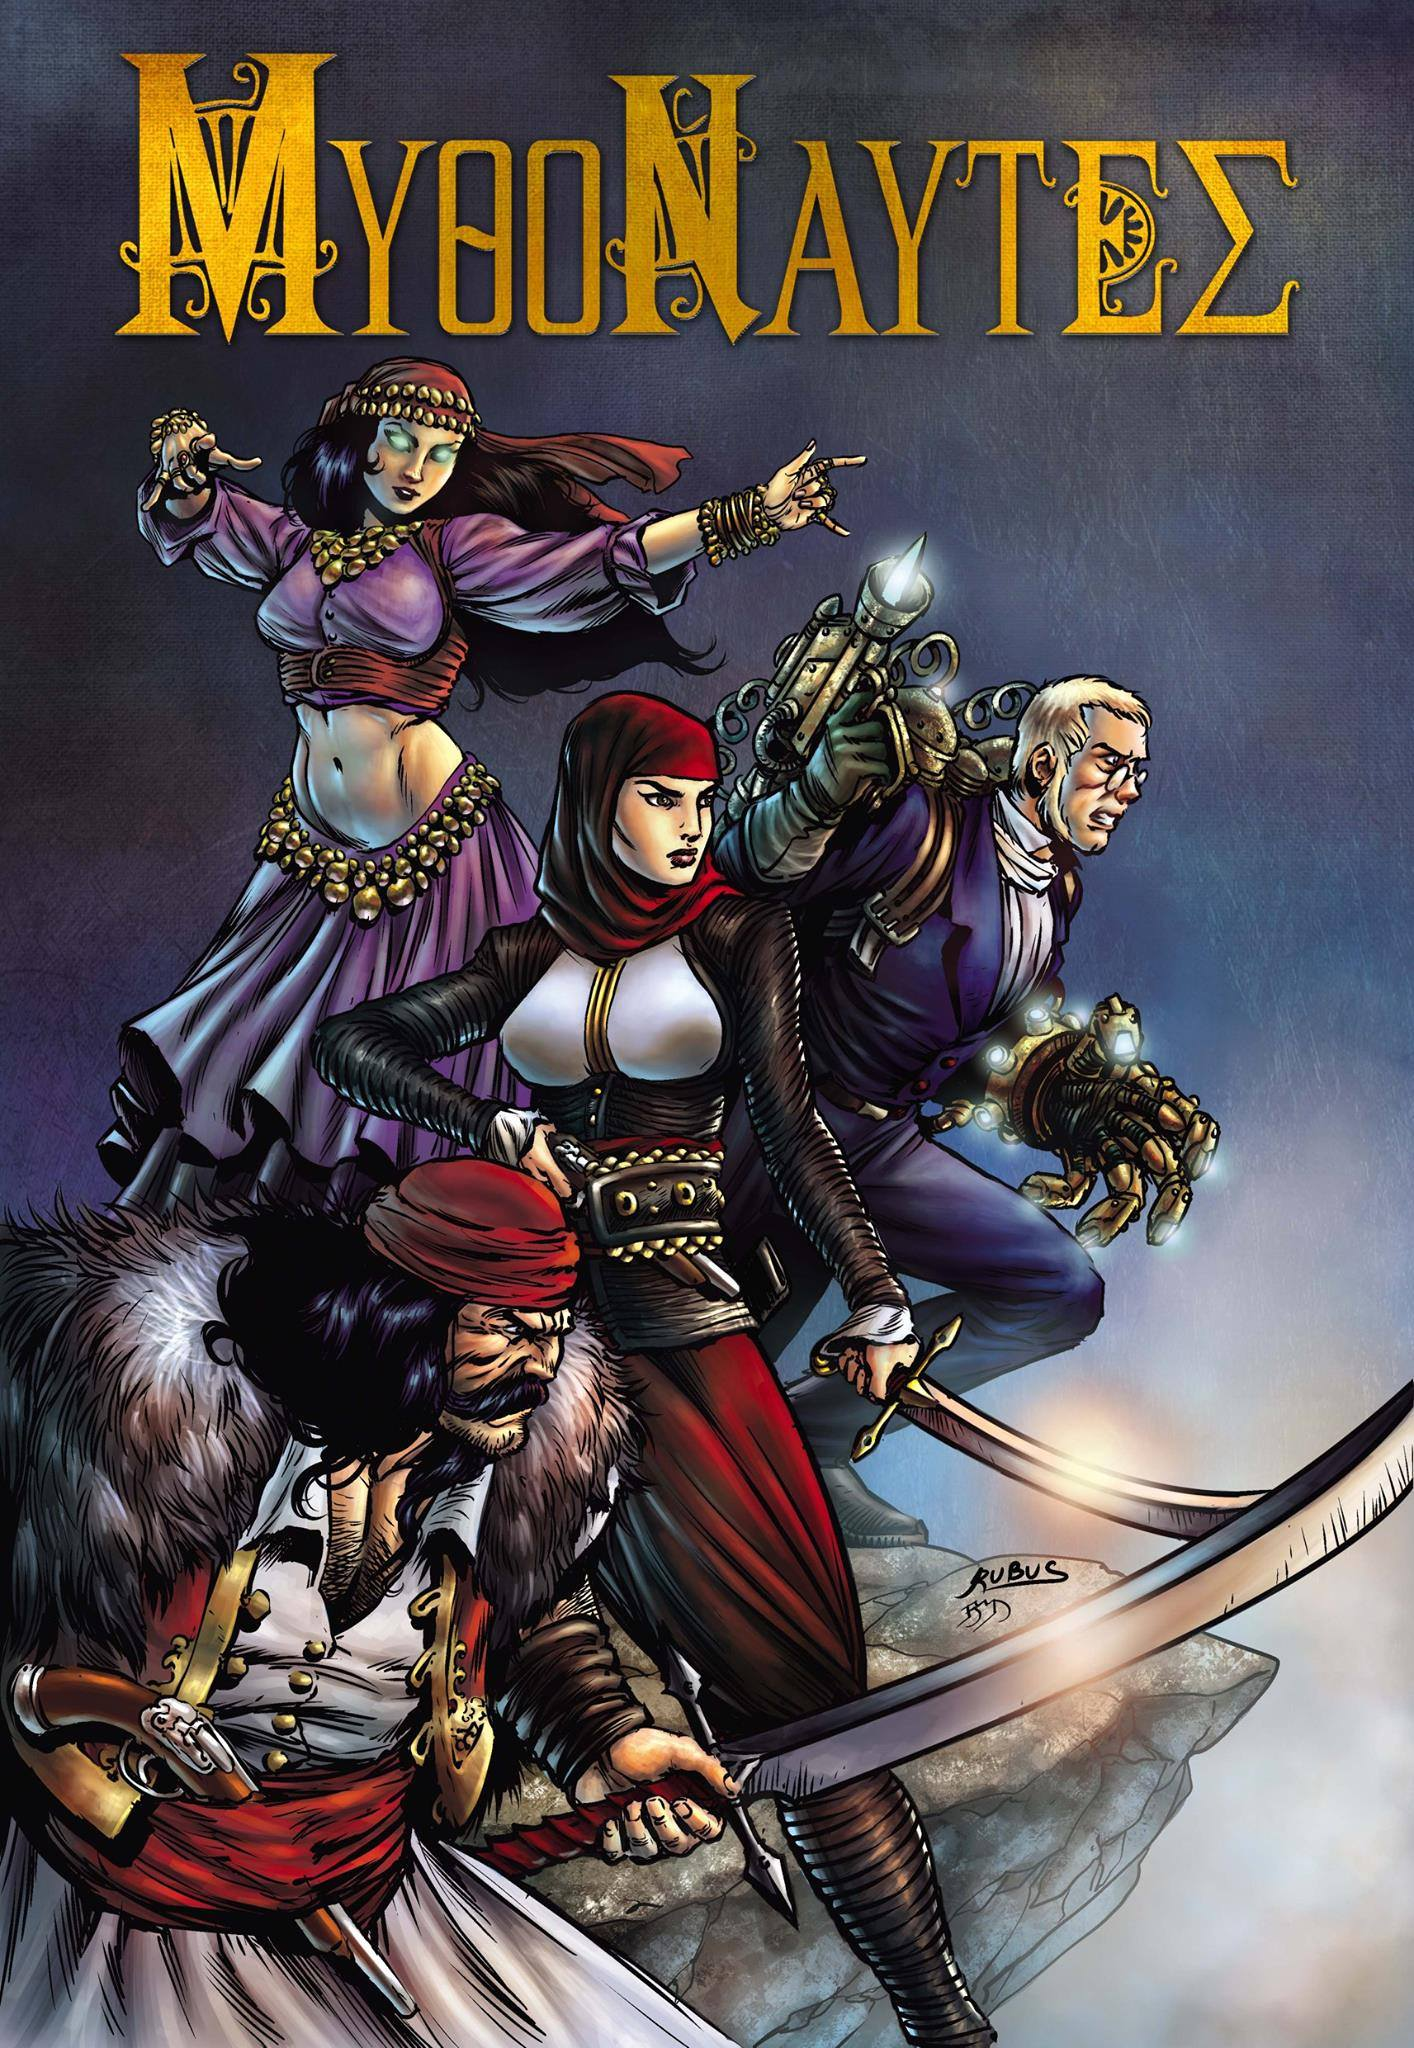 Mythonauts 1 first edition cover.jpg